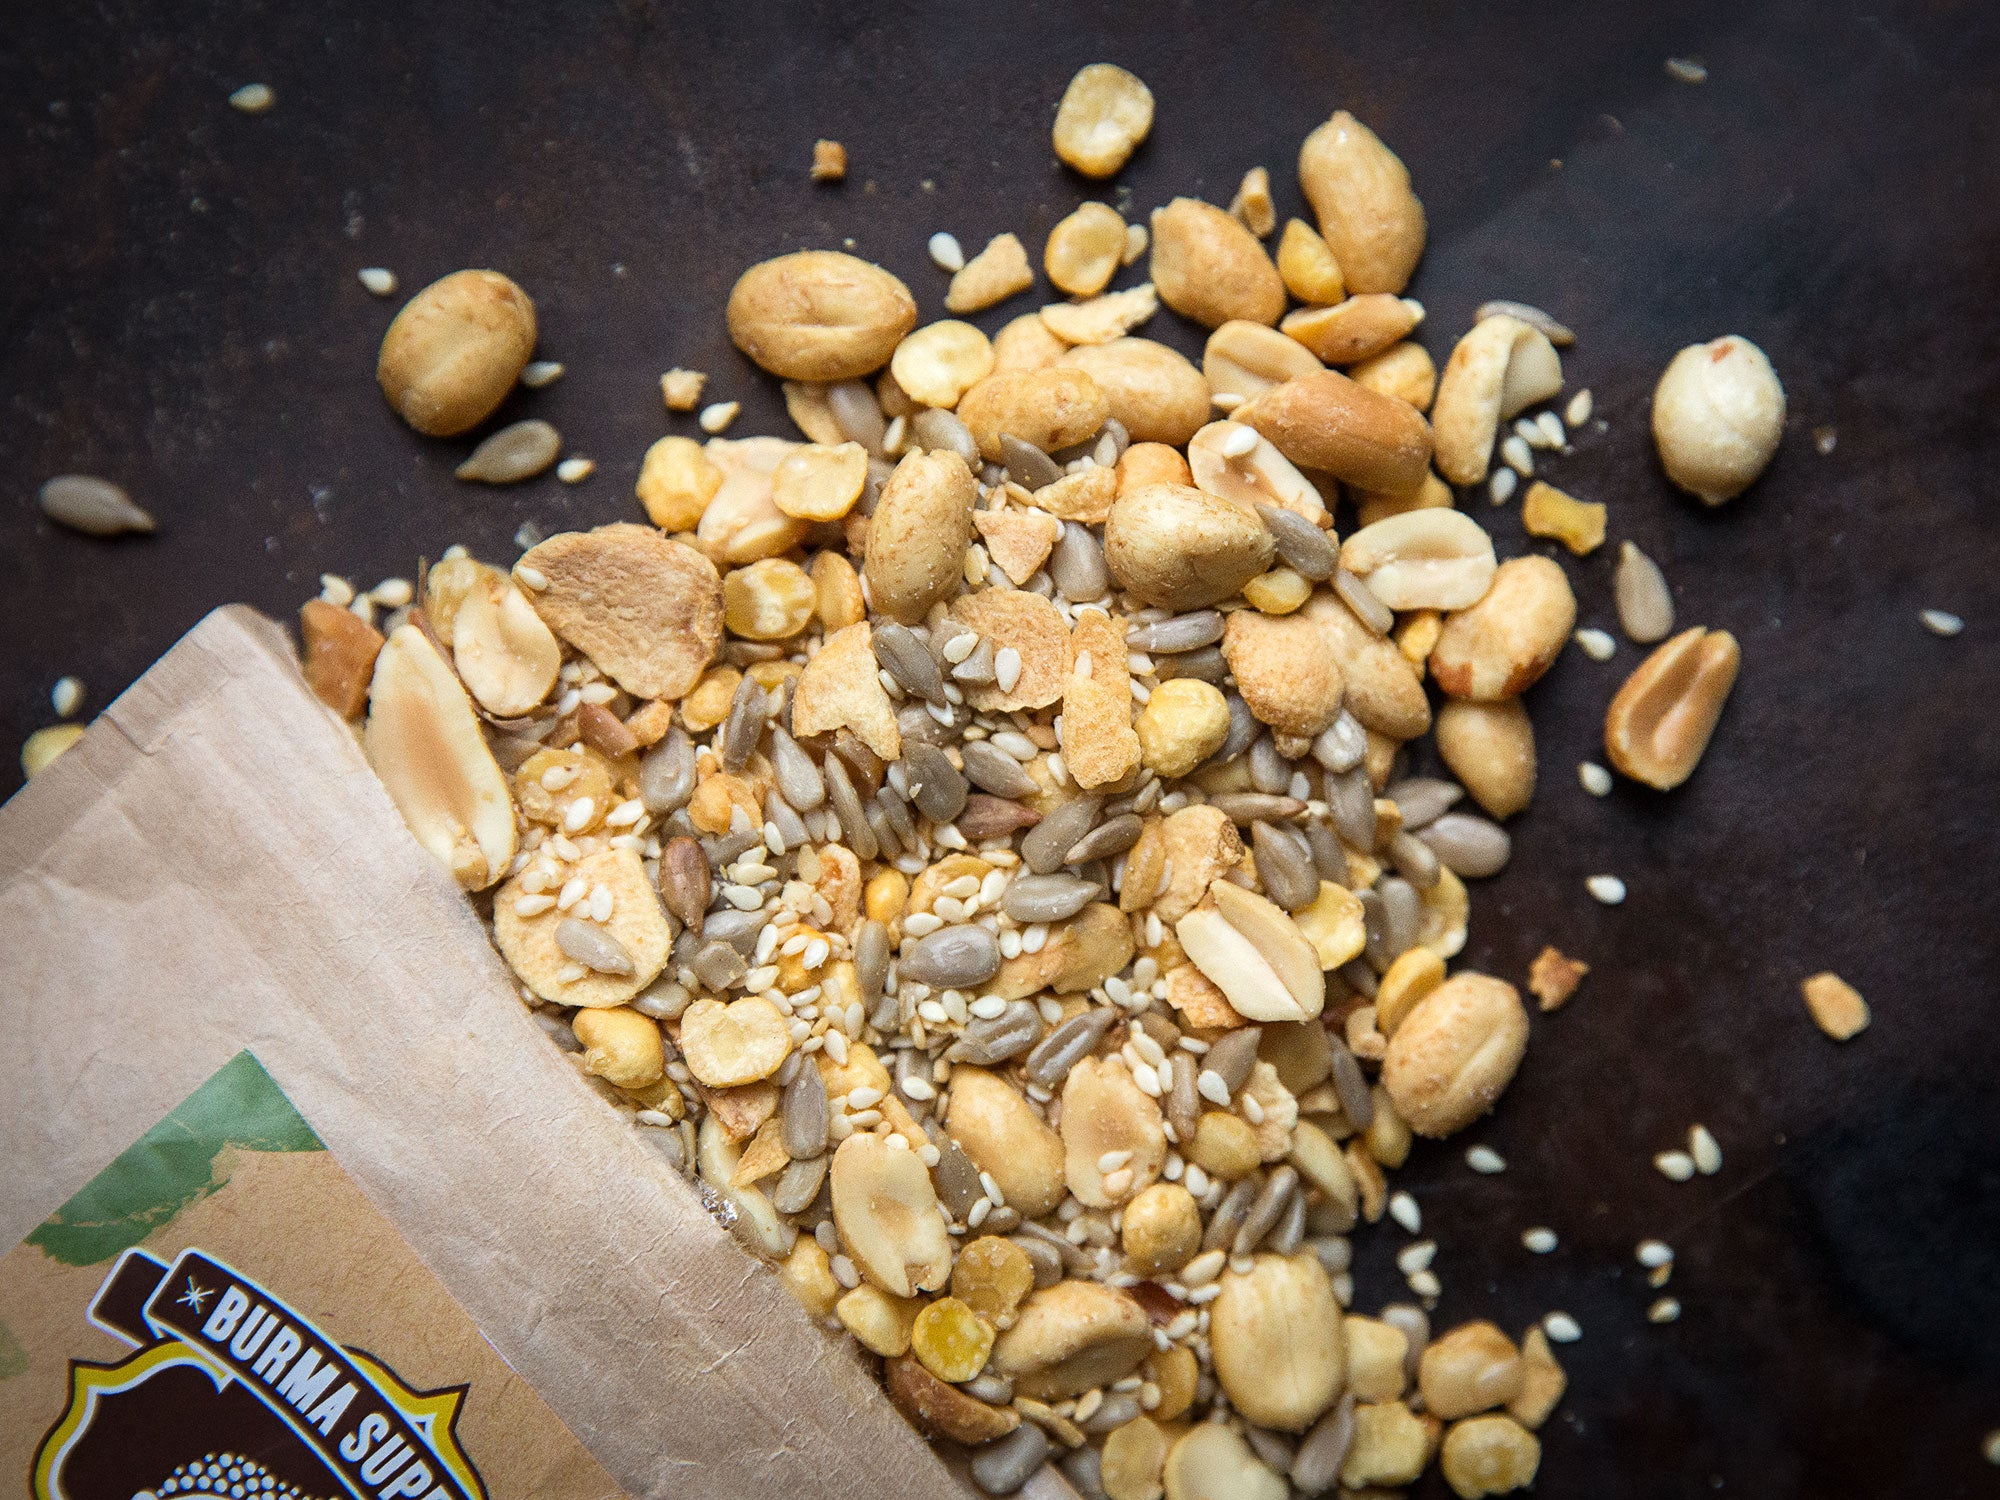 Sneak These Nutty Burmese Crunchies On Pretty Much Everything